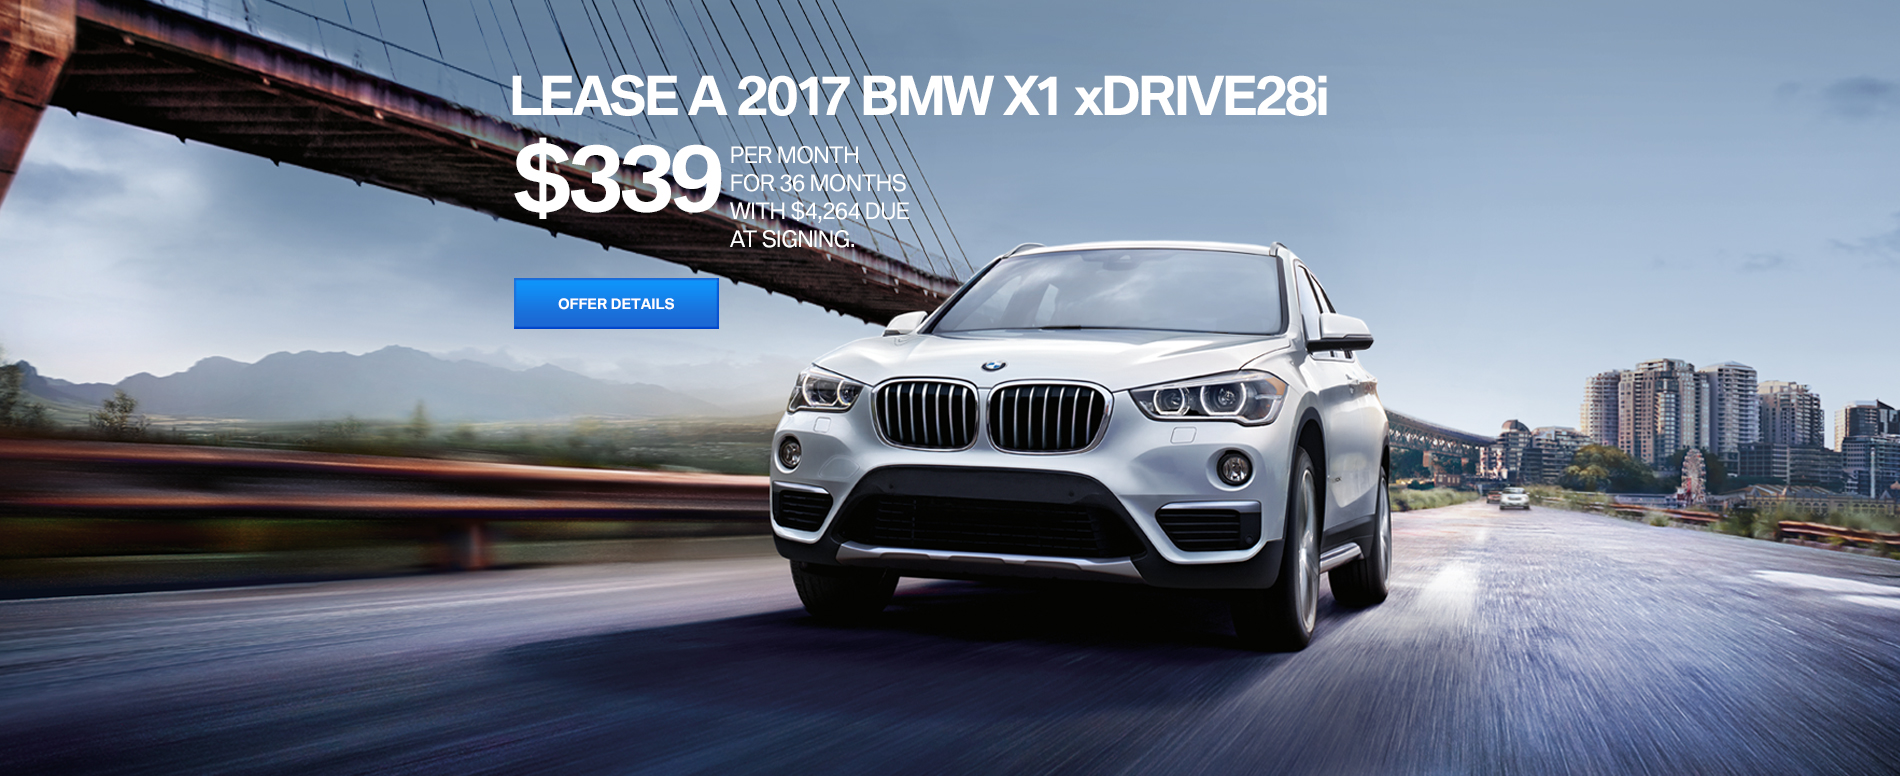 LEASE A 2017 X1 sDrive28i FOR $319 /MO FOR 36 MONTHS